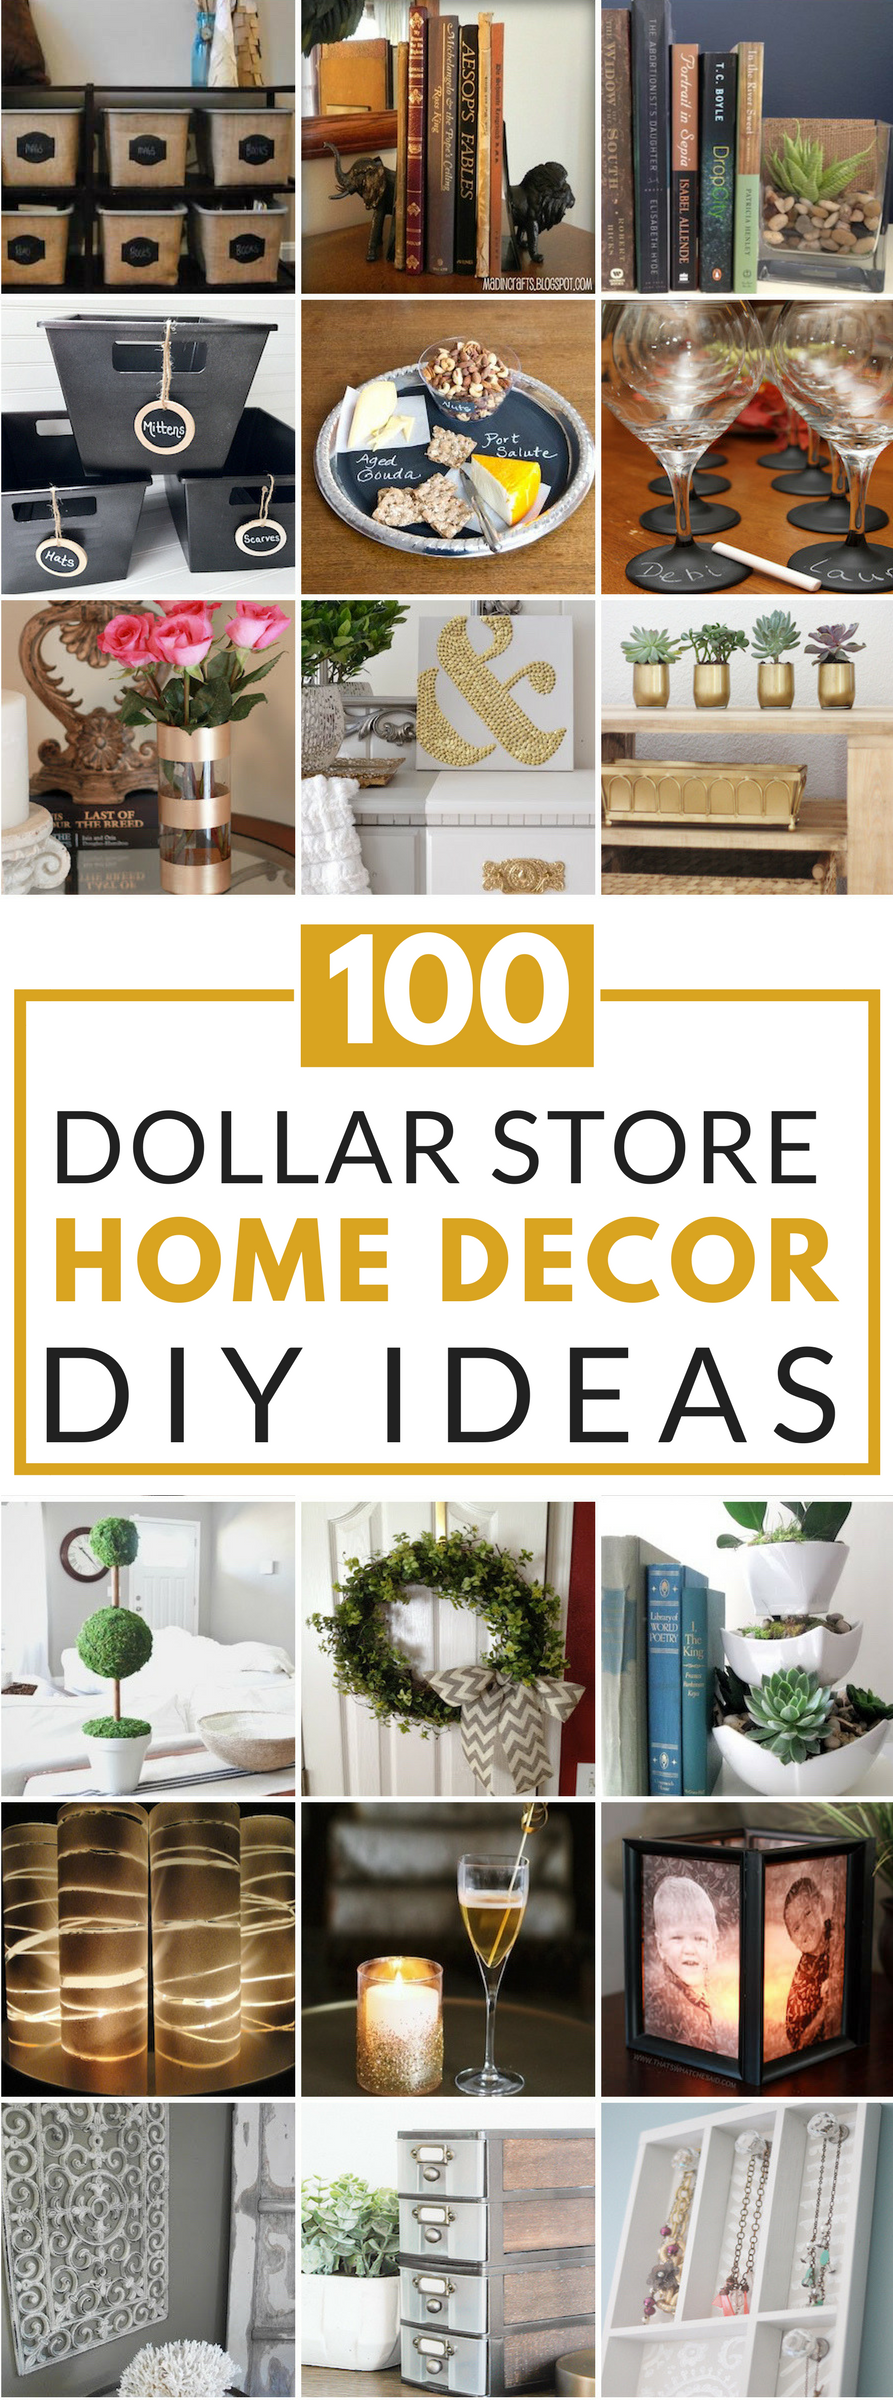 100 dollar store diy home decor ideas prudent penny pincher for Home decor ideas